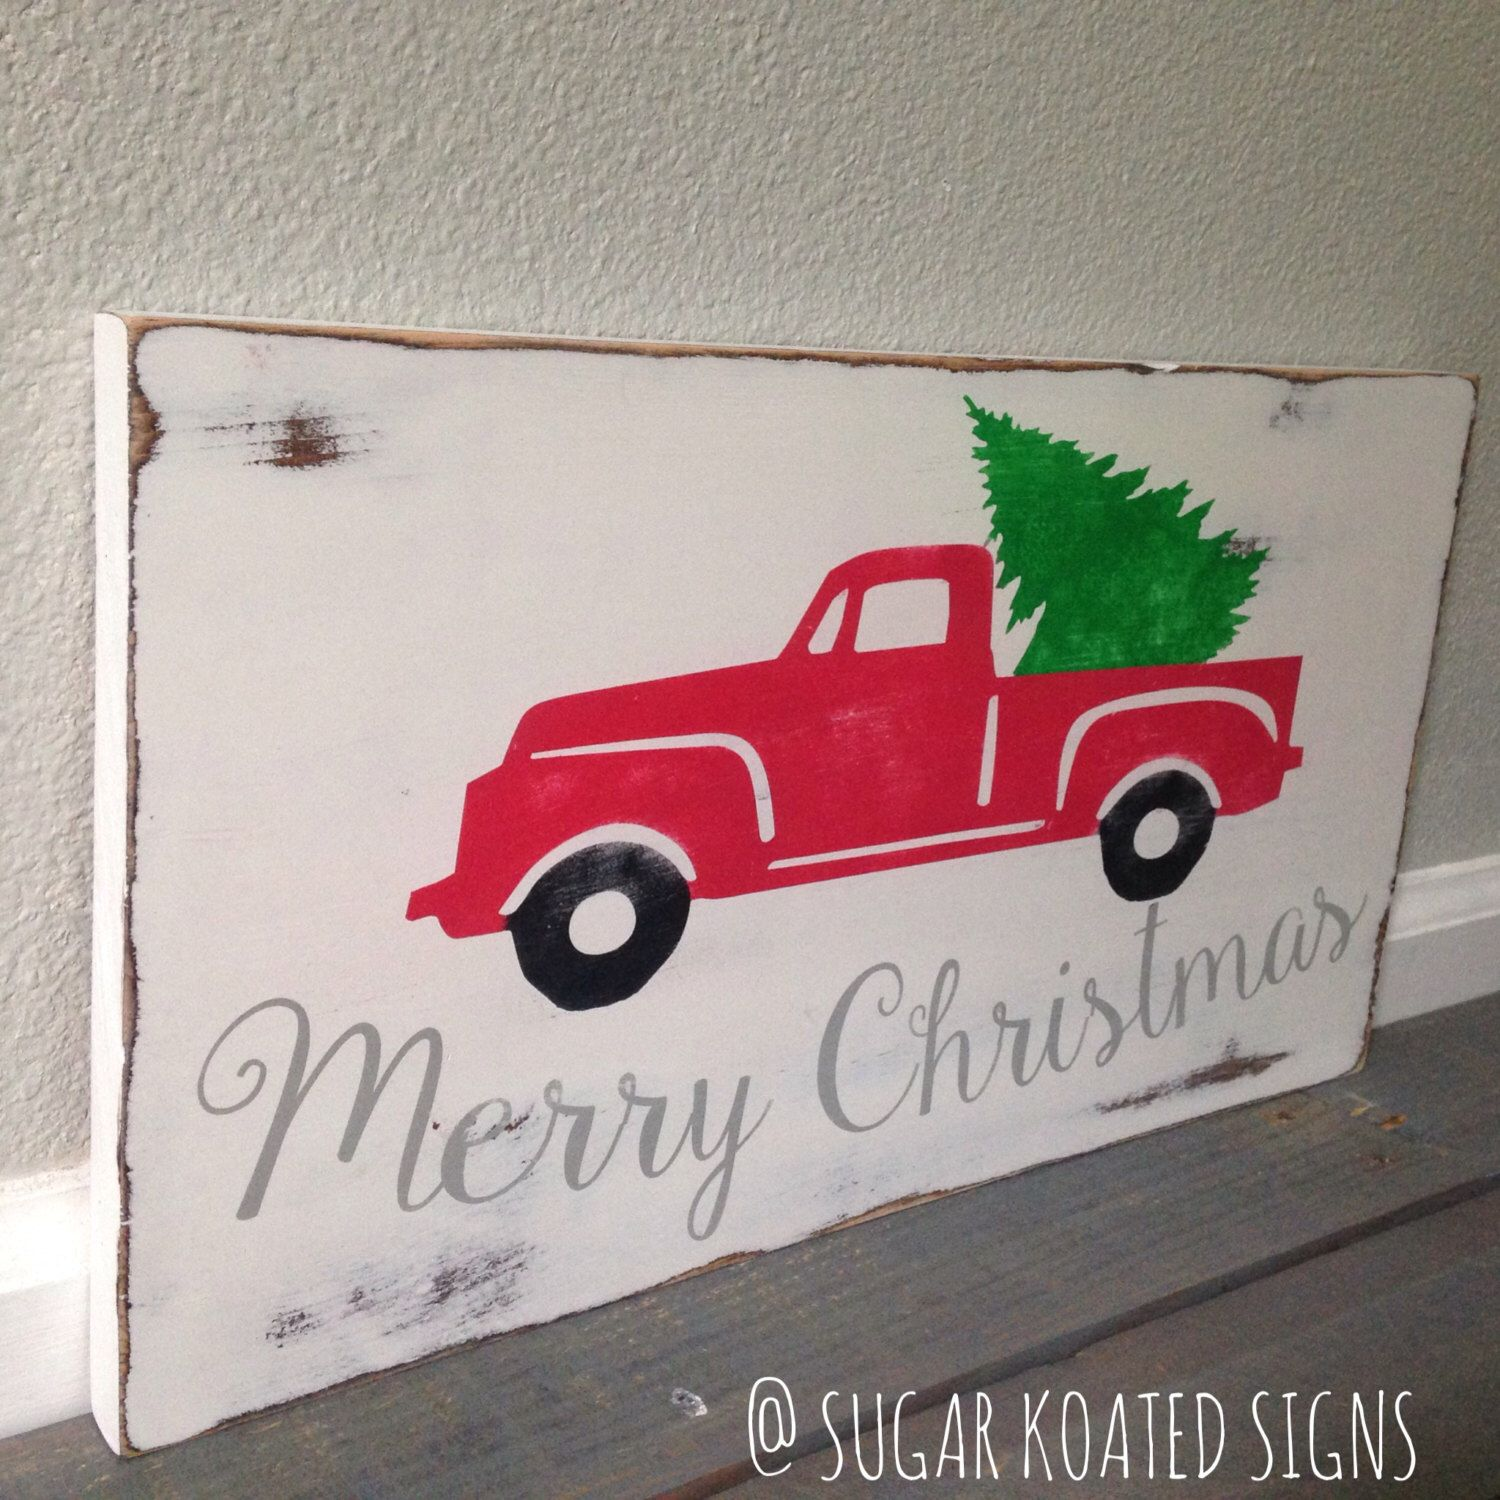 Christmas wooden christmas memories hanging sign sold out - Merry Christmas Vintage Christmas Tree Truck Hand Painted Wooden Pallet Sign By Sugarkoatedsigns On